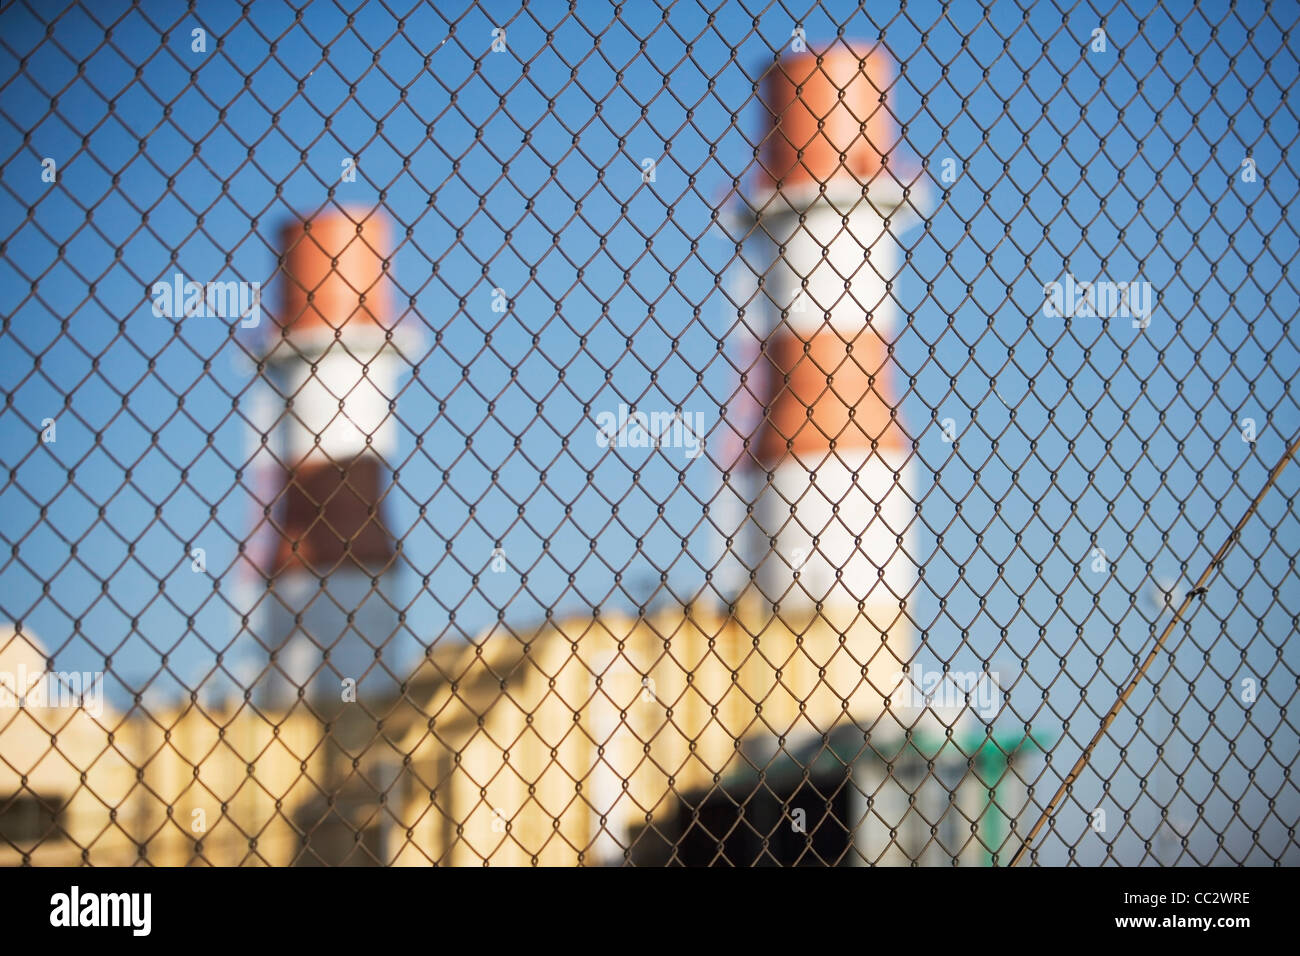 USA, New York City, Industrial plant behind wire mesh fence - Stock Image